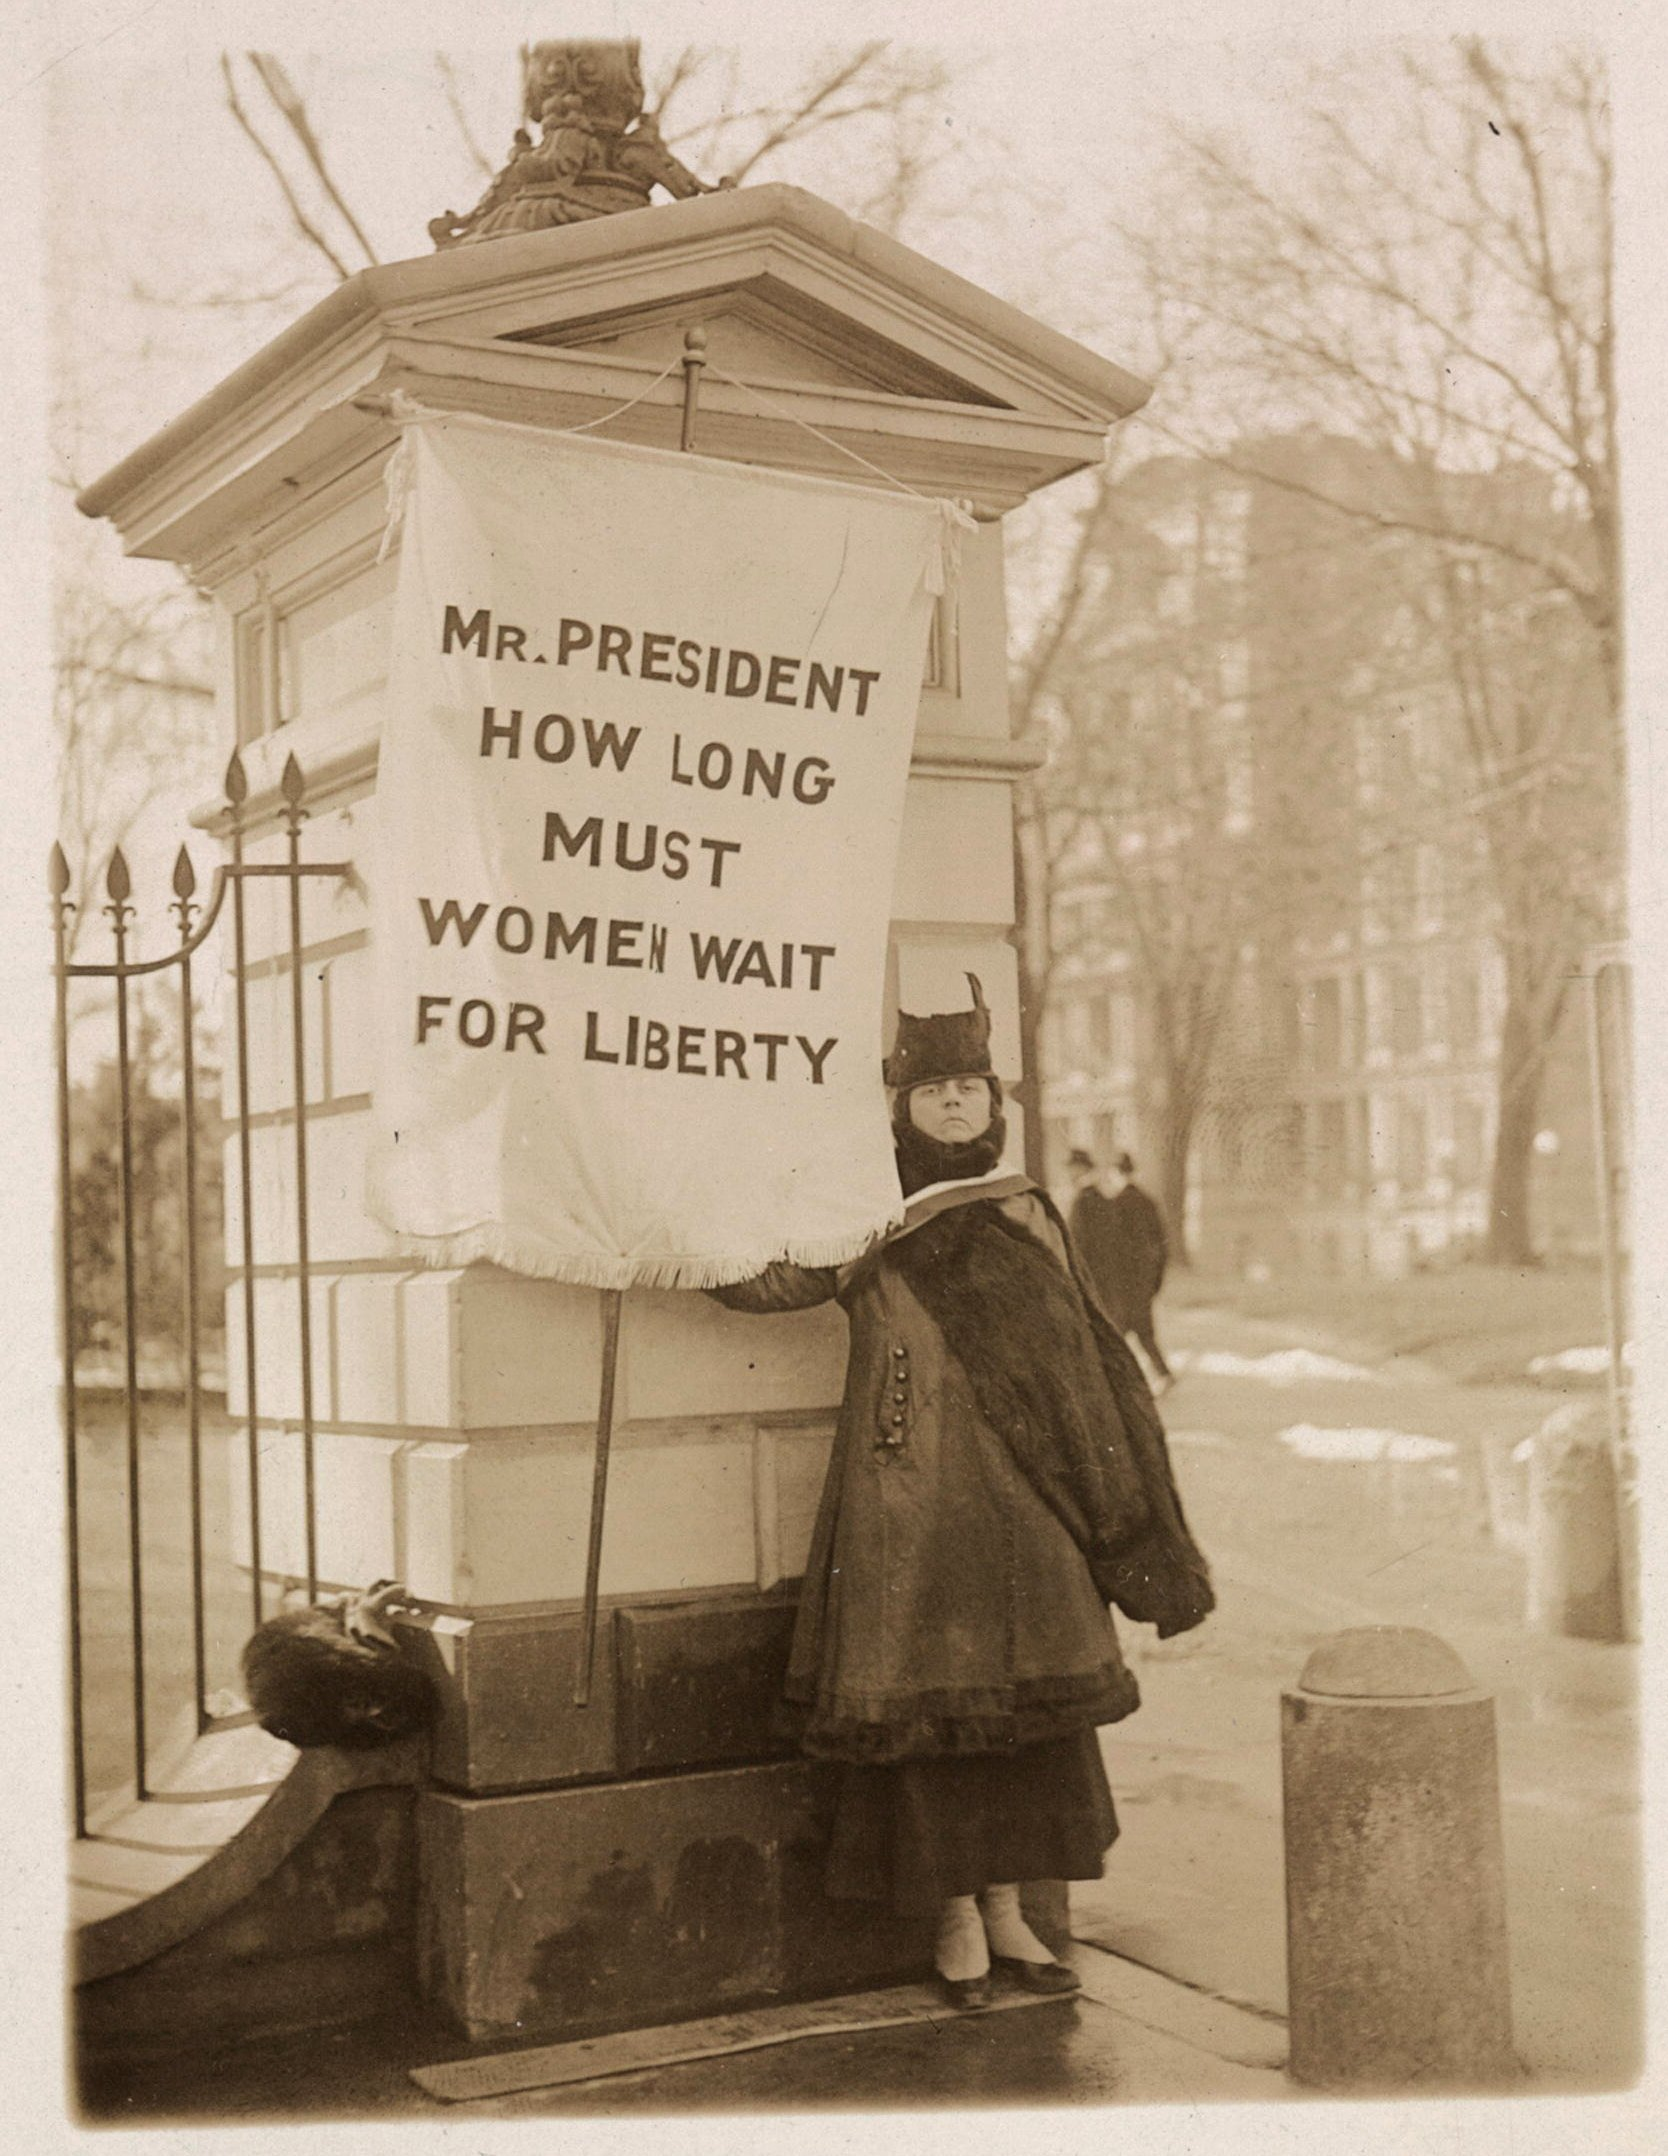 Alison Turnbull Hopkins, Silent Sentinel later jailed for her activism, pickets outside the White House. Library of Congress.